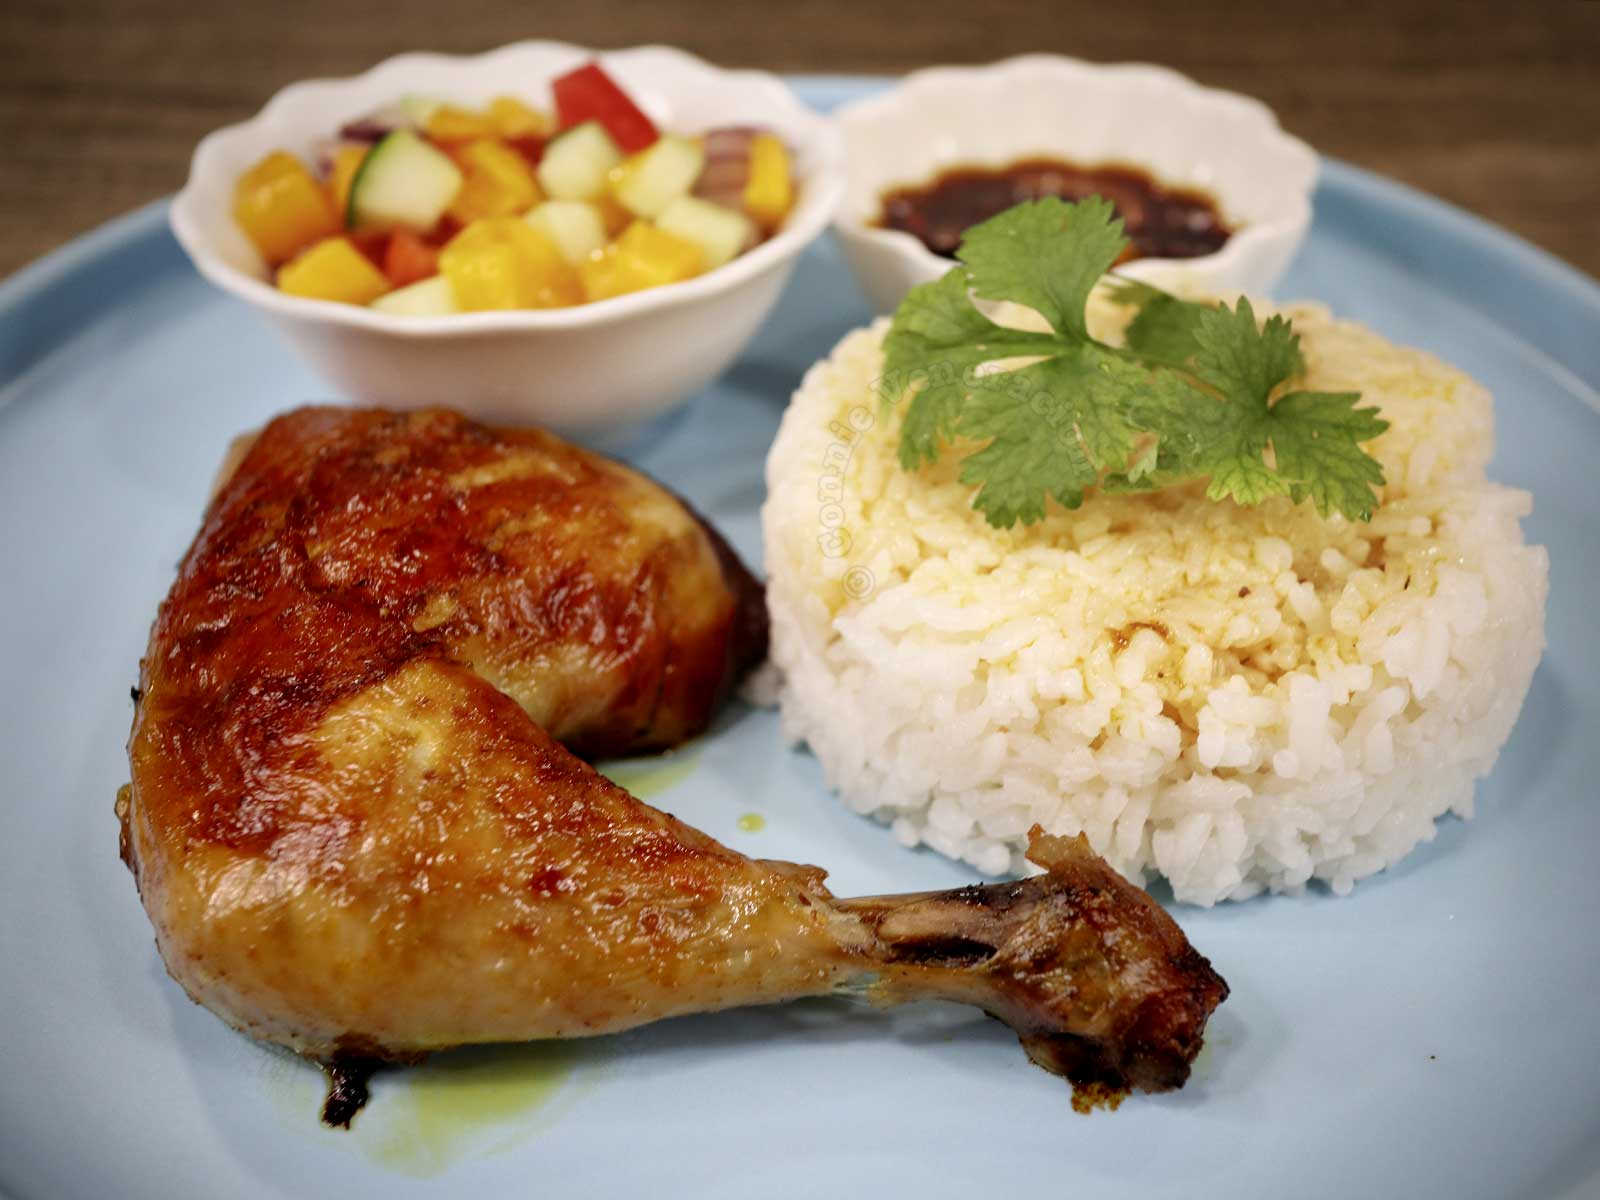 Chicken inasal with rice, salad and dipping sauce